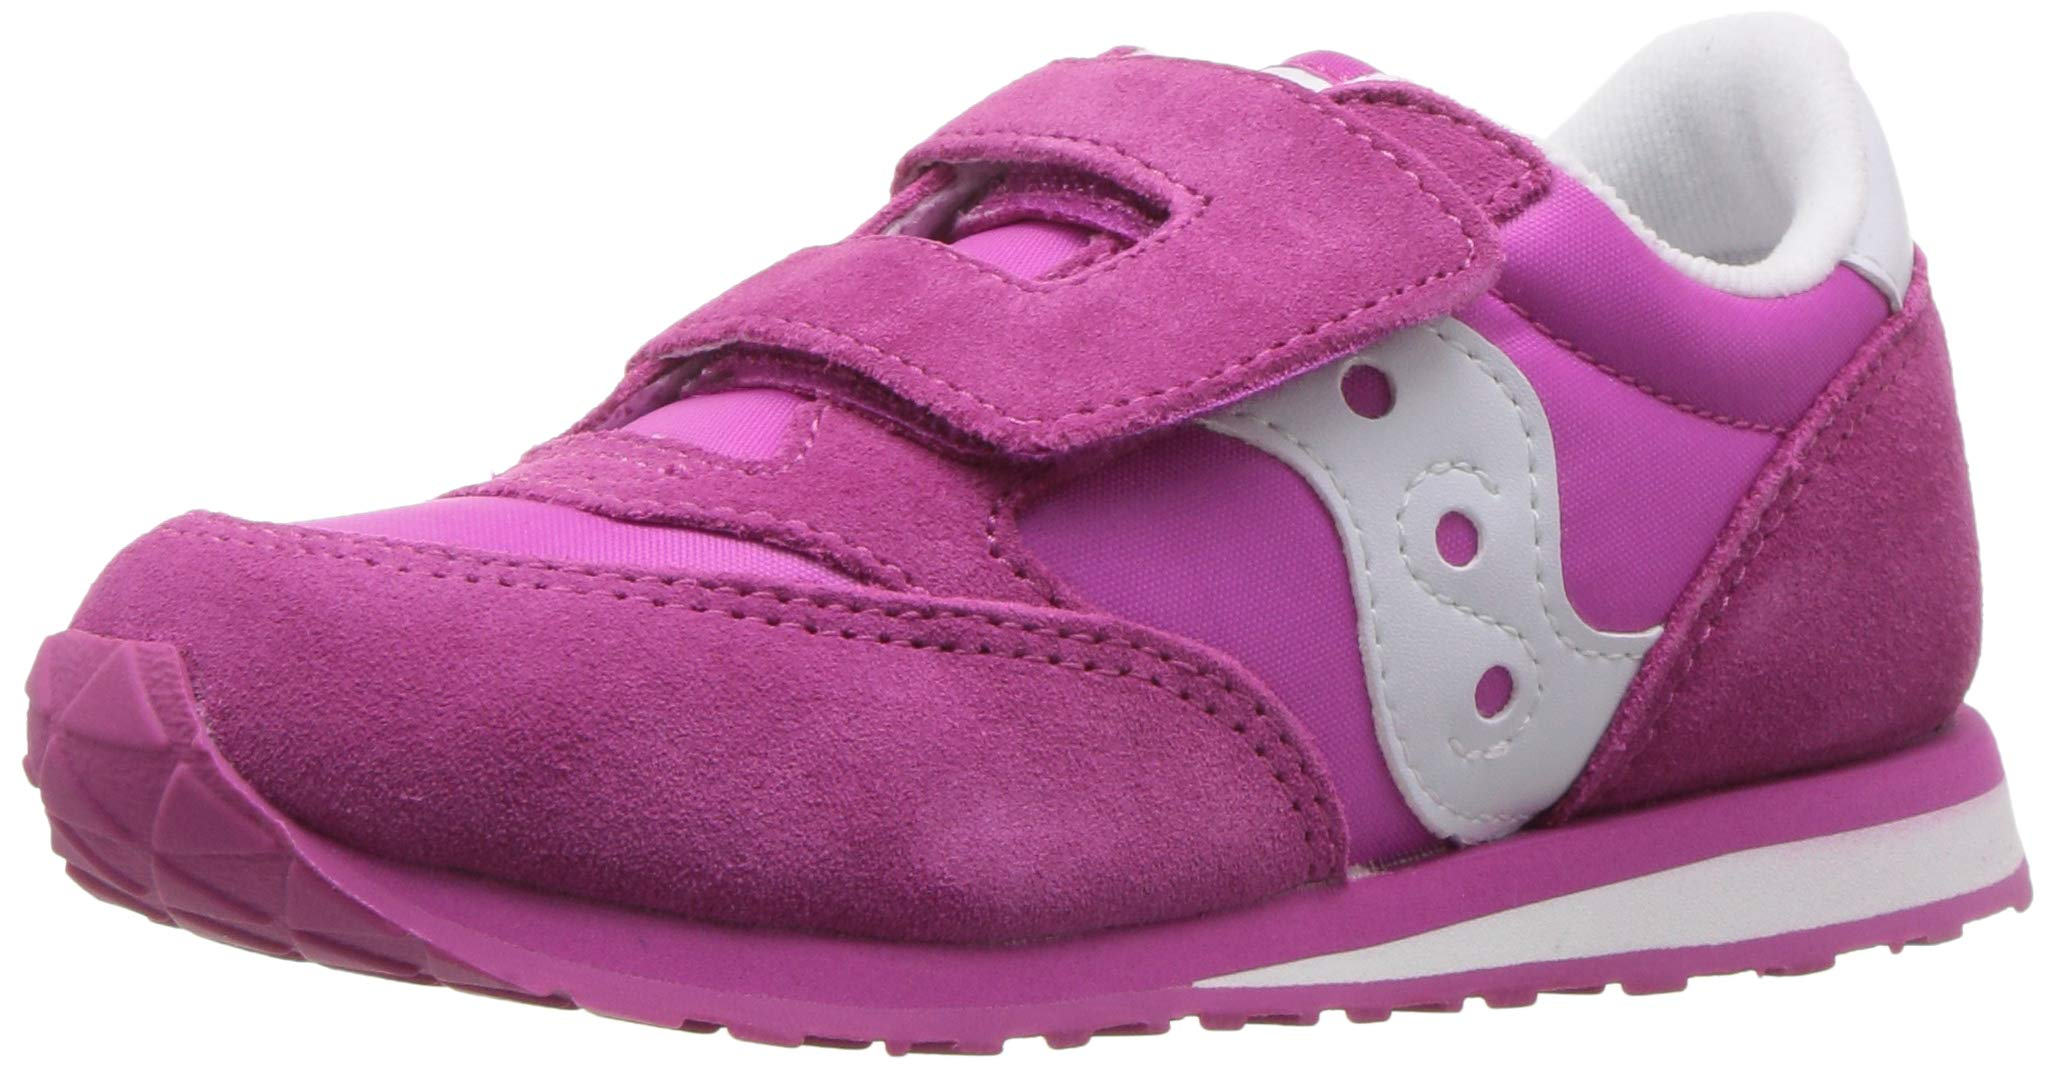 Saucony Kid's Baby Jazz H&L-K Sneaker Pink 9 Wide US Toddler